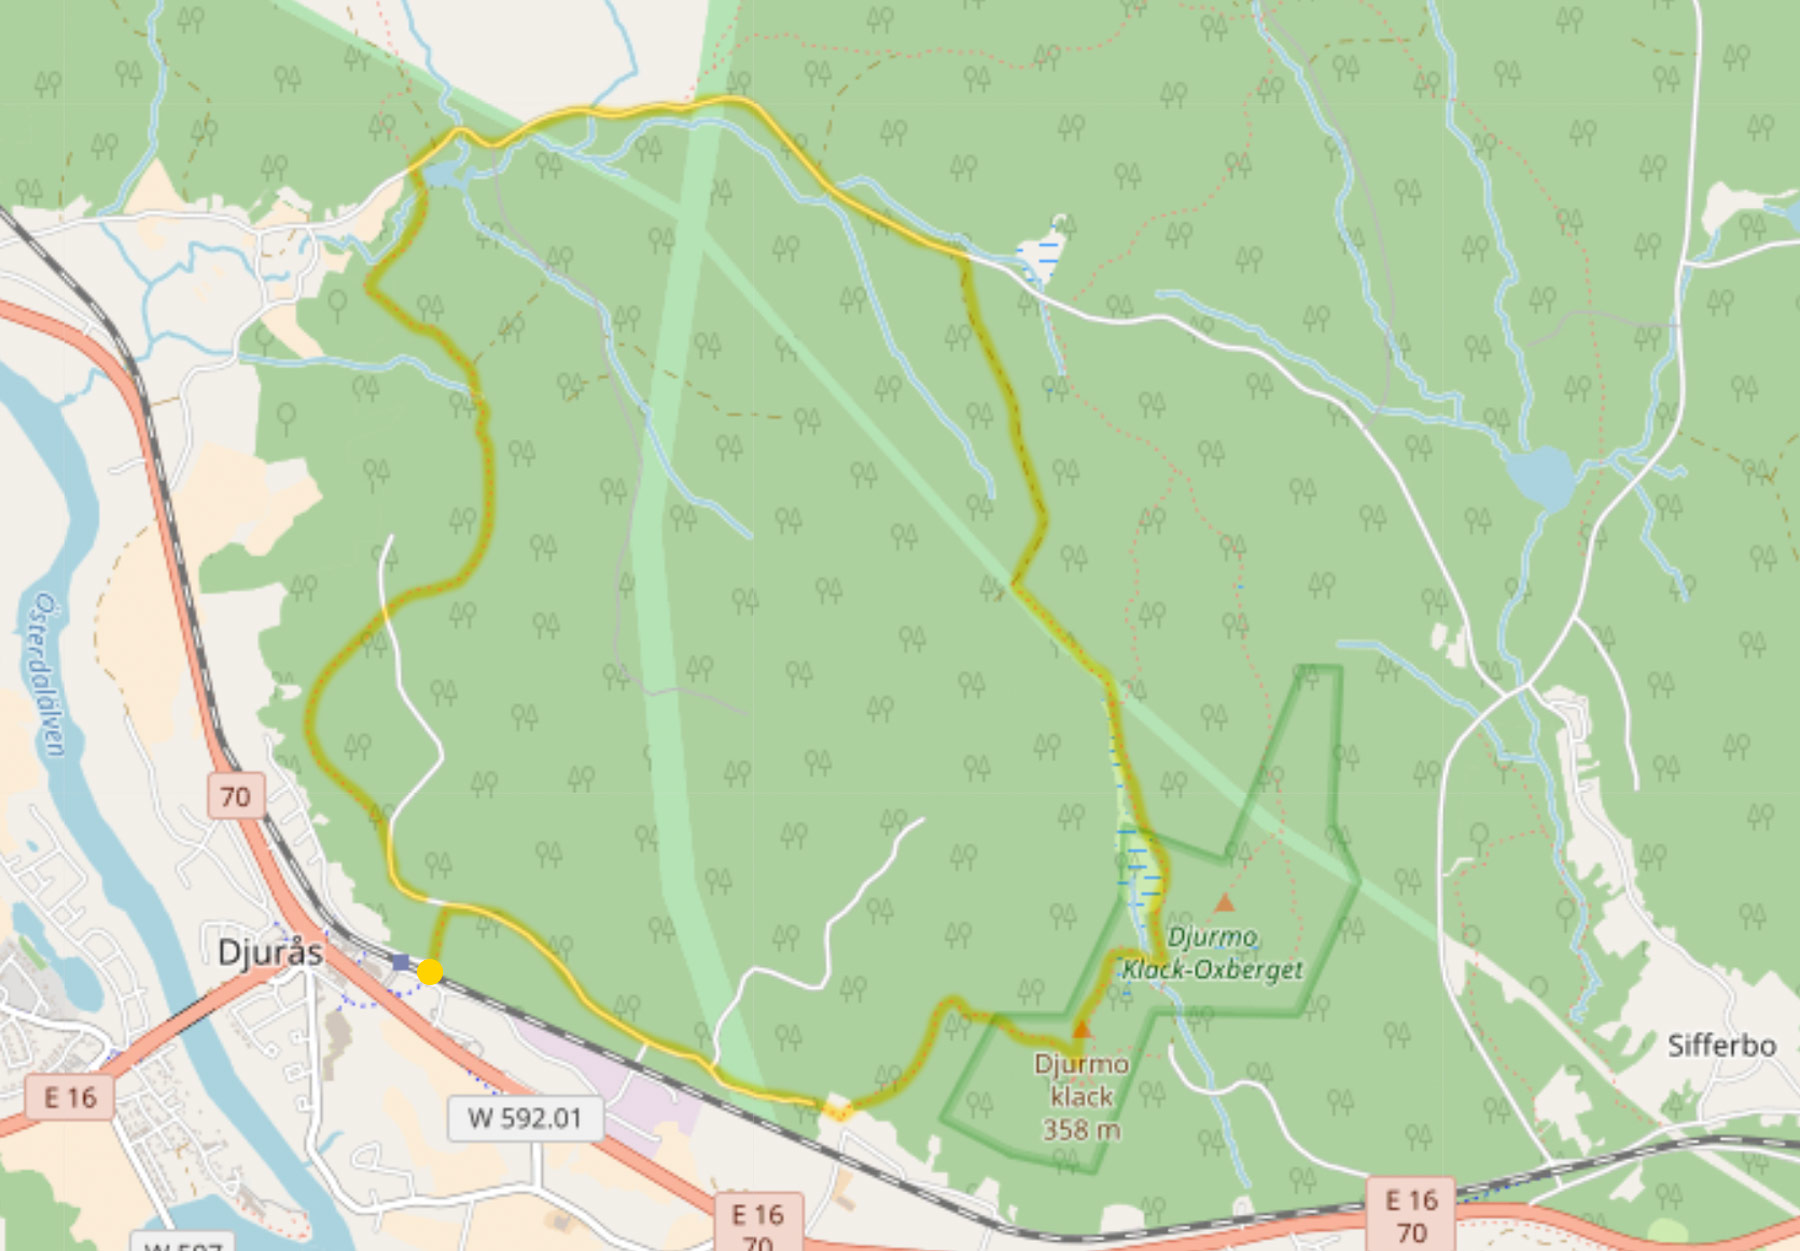 Hiking route on map